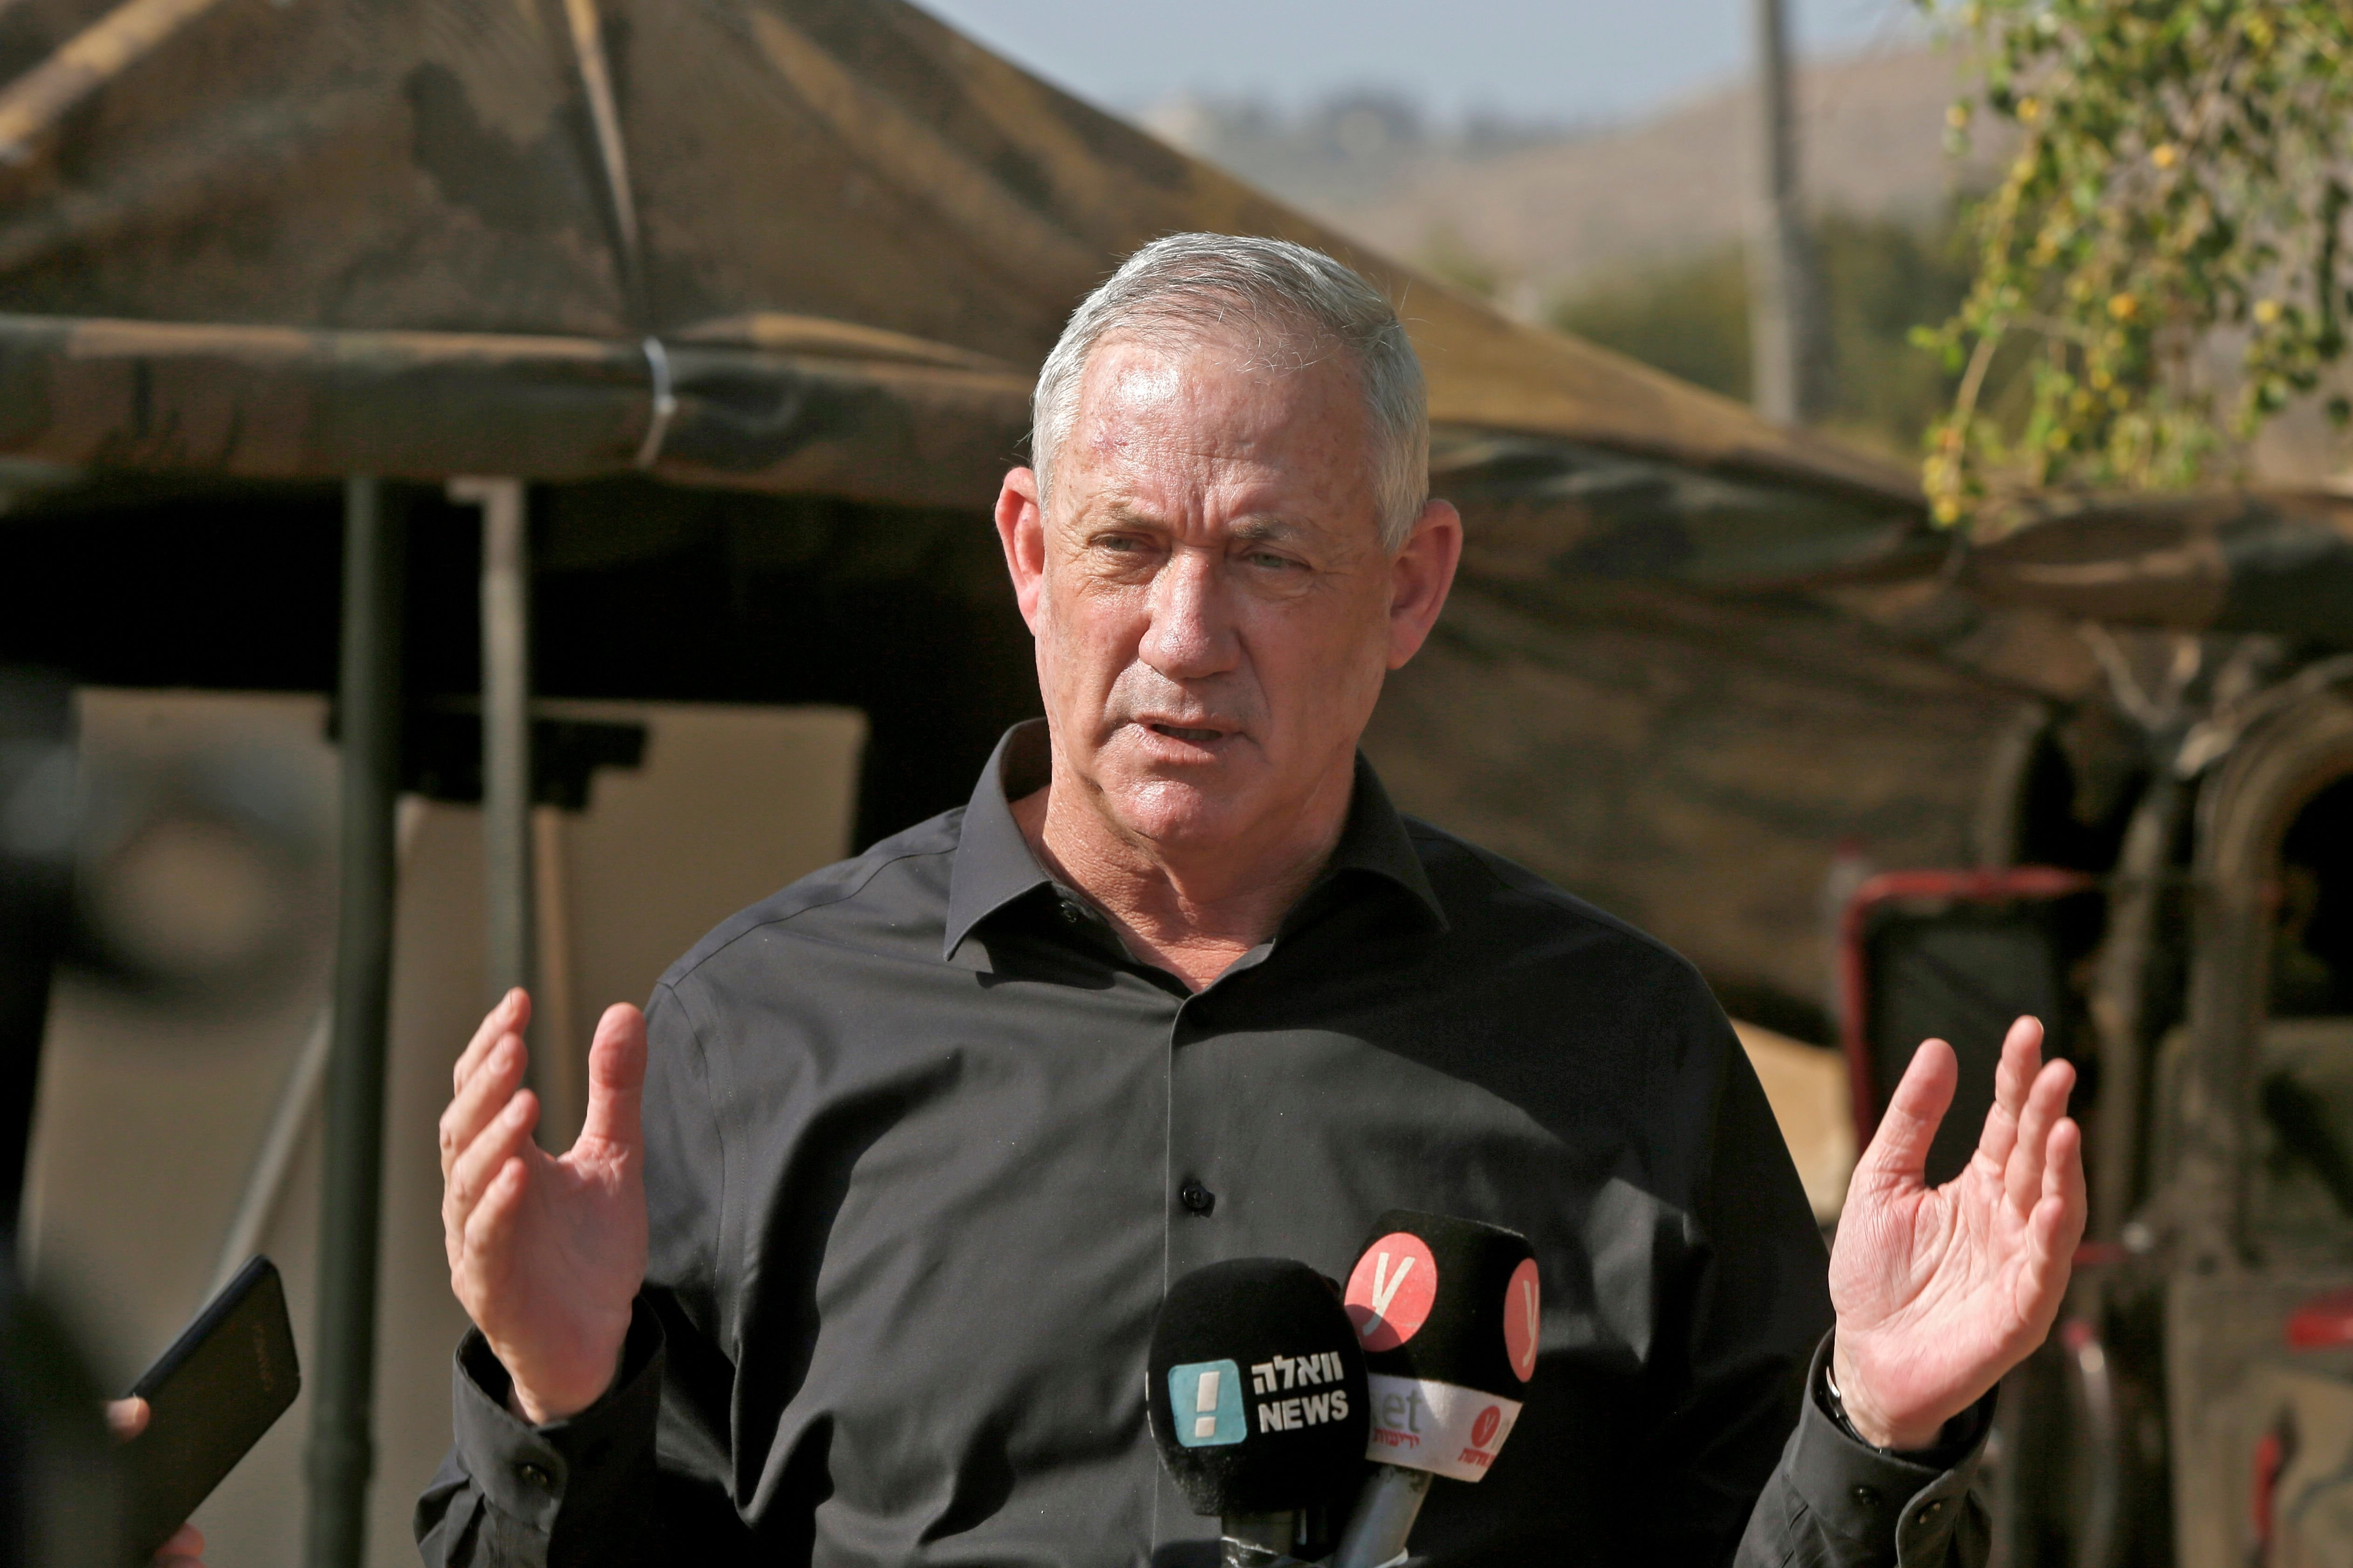 """Benny Gantz, Israel's Alternate Prime Minister and Defence Minister, speaks to the media during the """"Deadly Arrow"""" military drill near Kibbutz Ravid, northern Israel, Oct. 27, 2020. (Photo by JALAA MAREY / AFP)"""